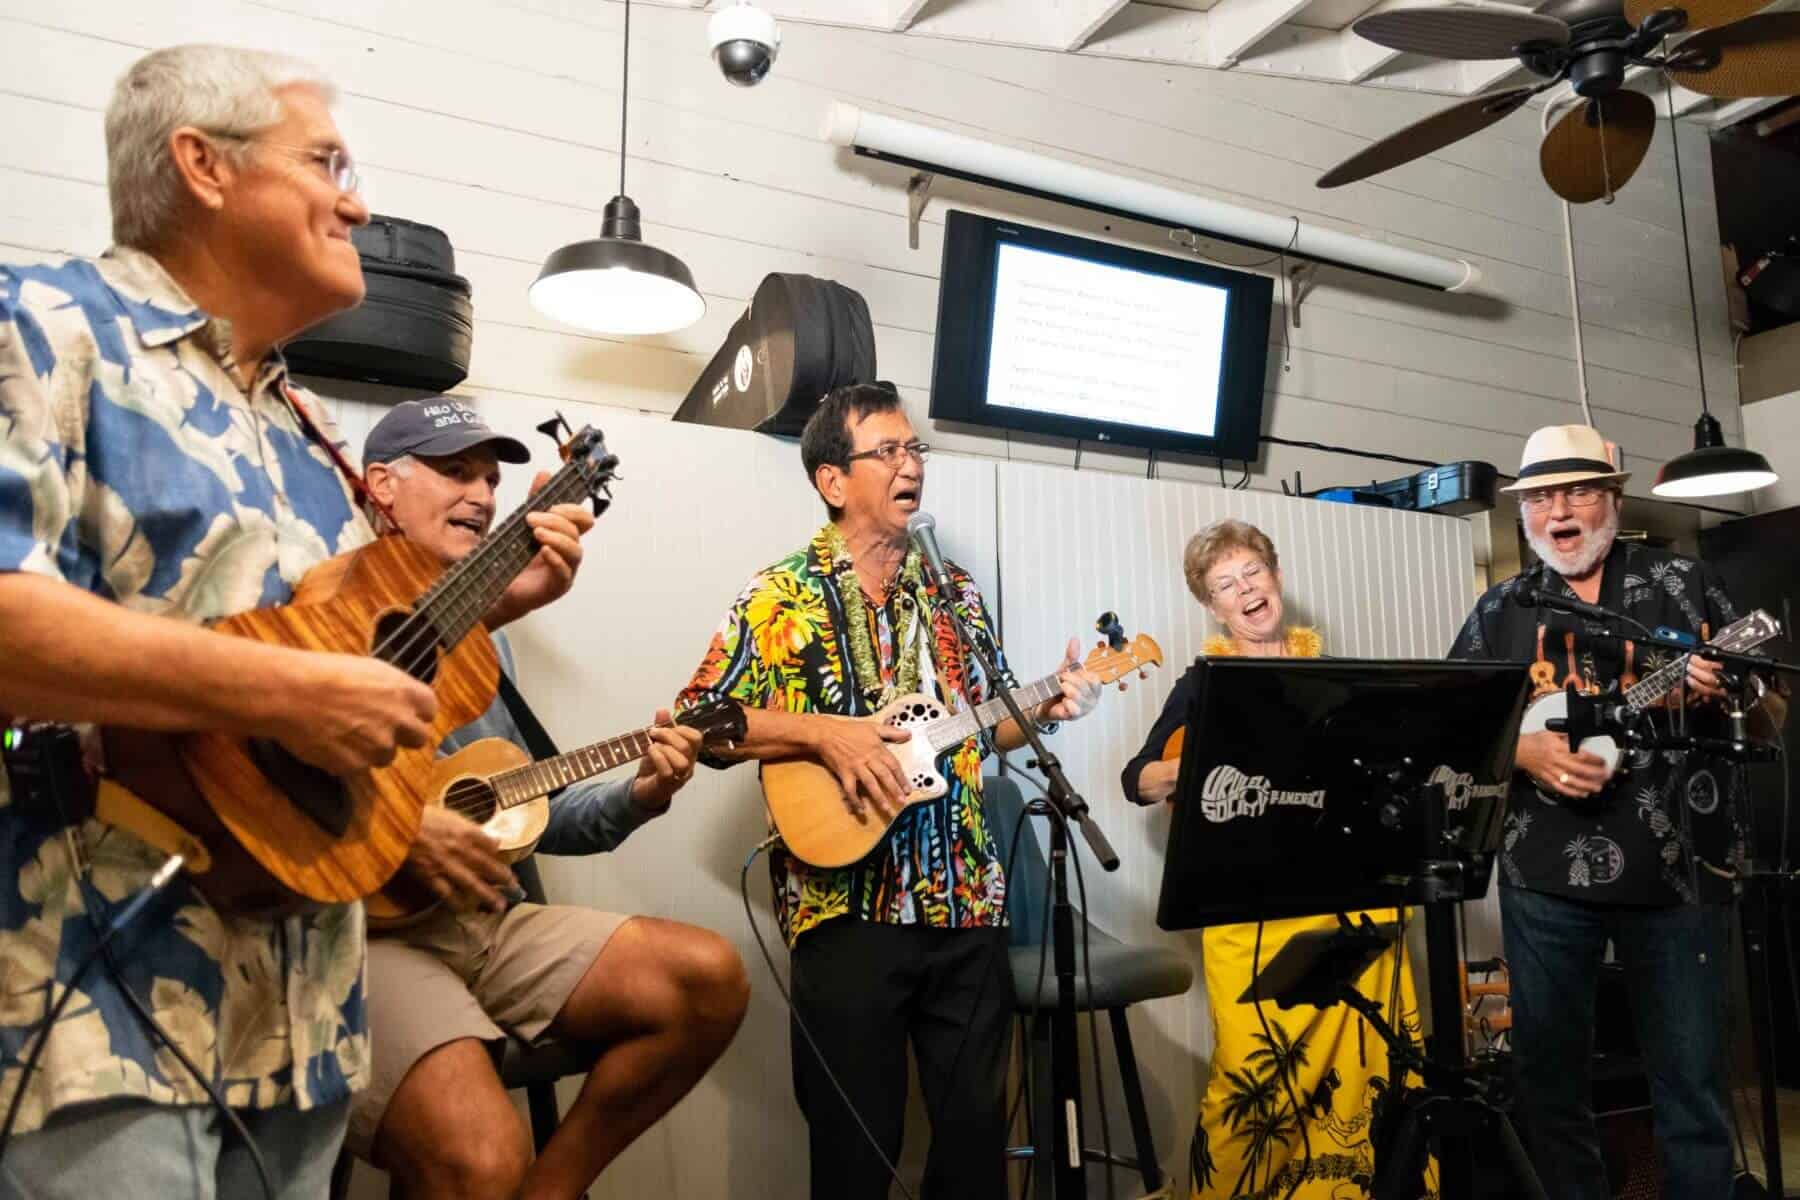 Ukulele Meet at Oceanside Broiler